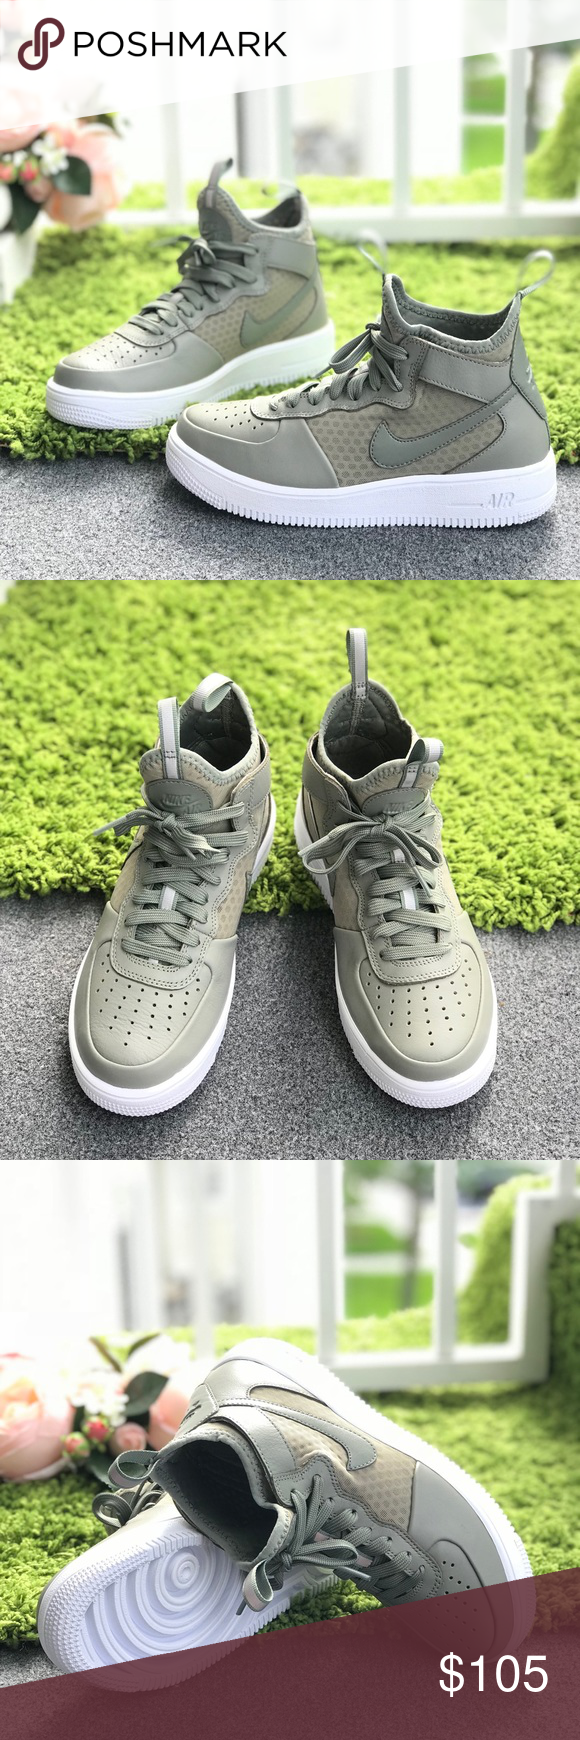 Nike Air Force 1 Ultraforce MID Dark Stucco WMNS NWT | My